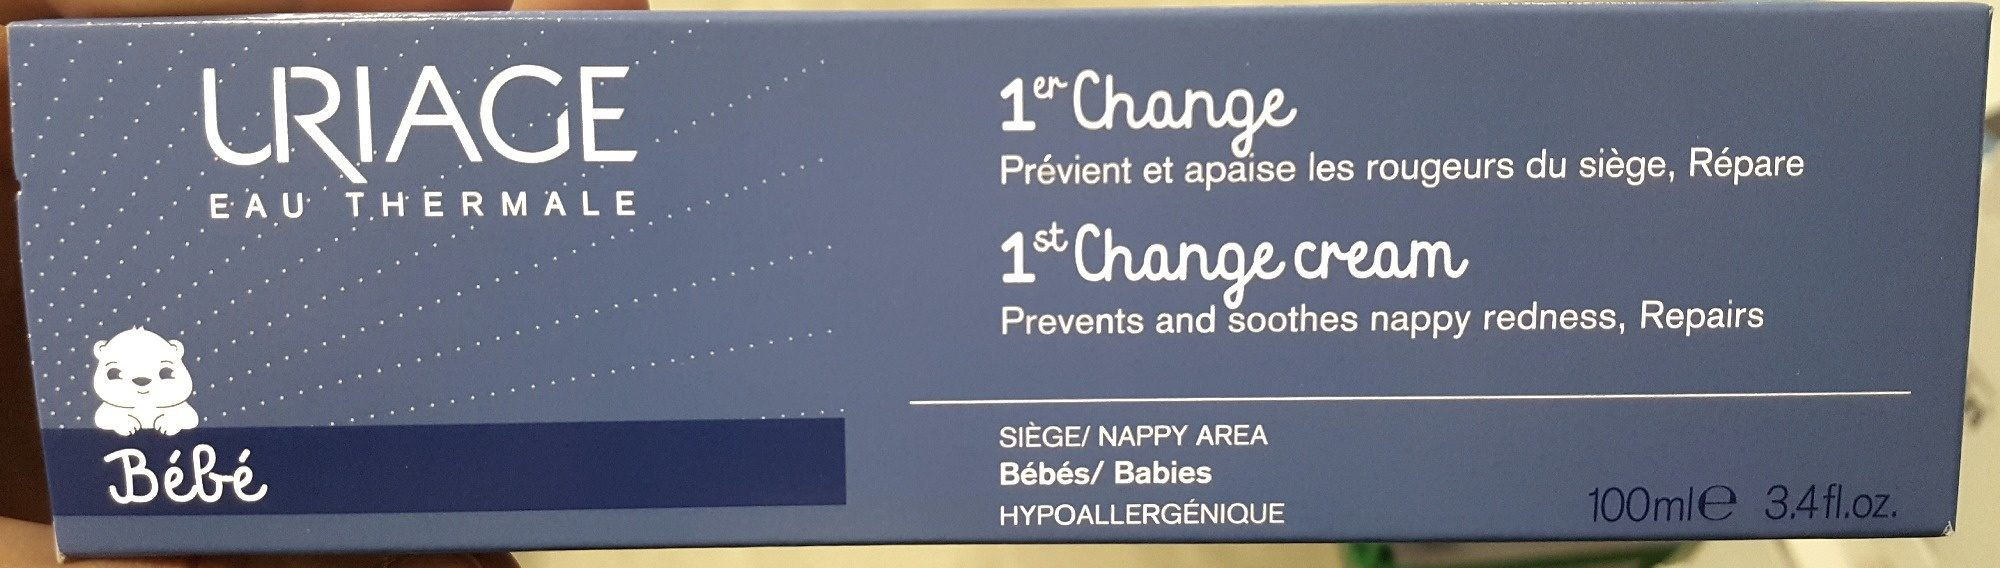 URIAGE 1er Change - Produit